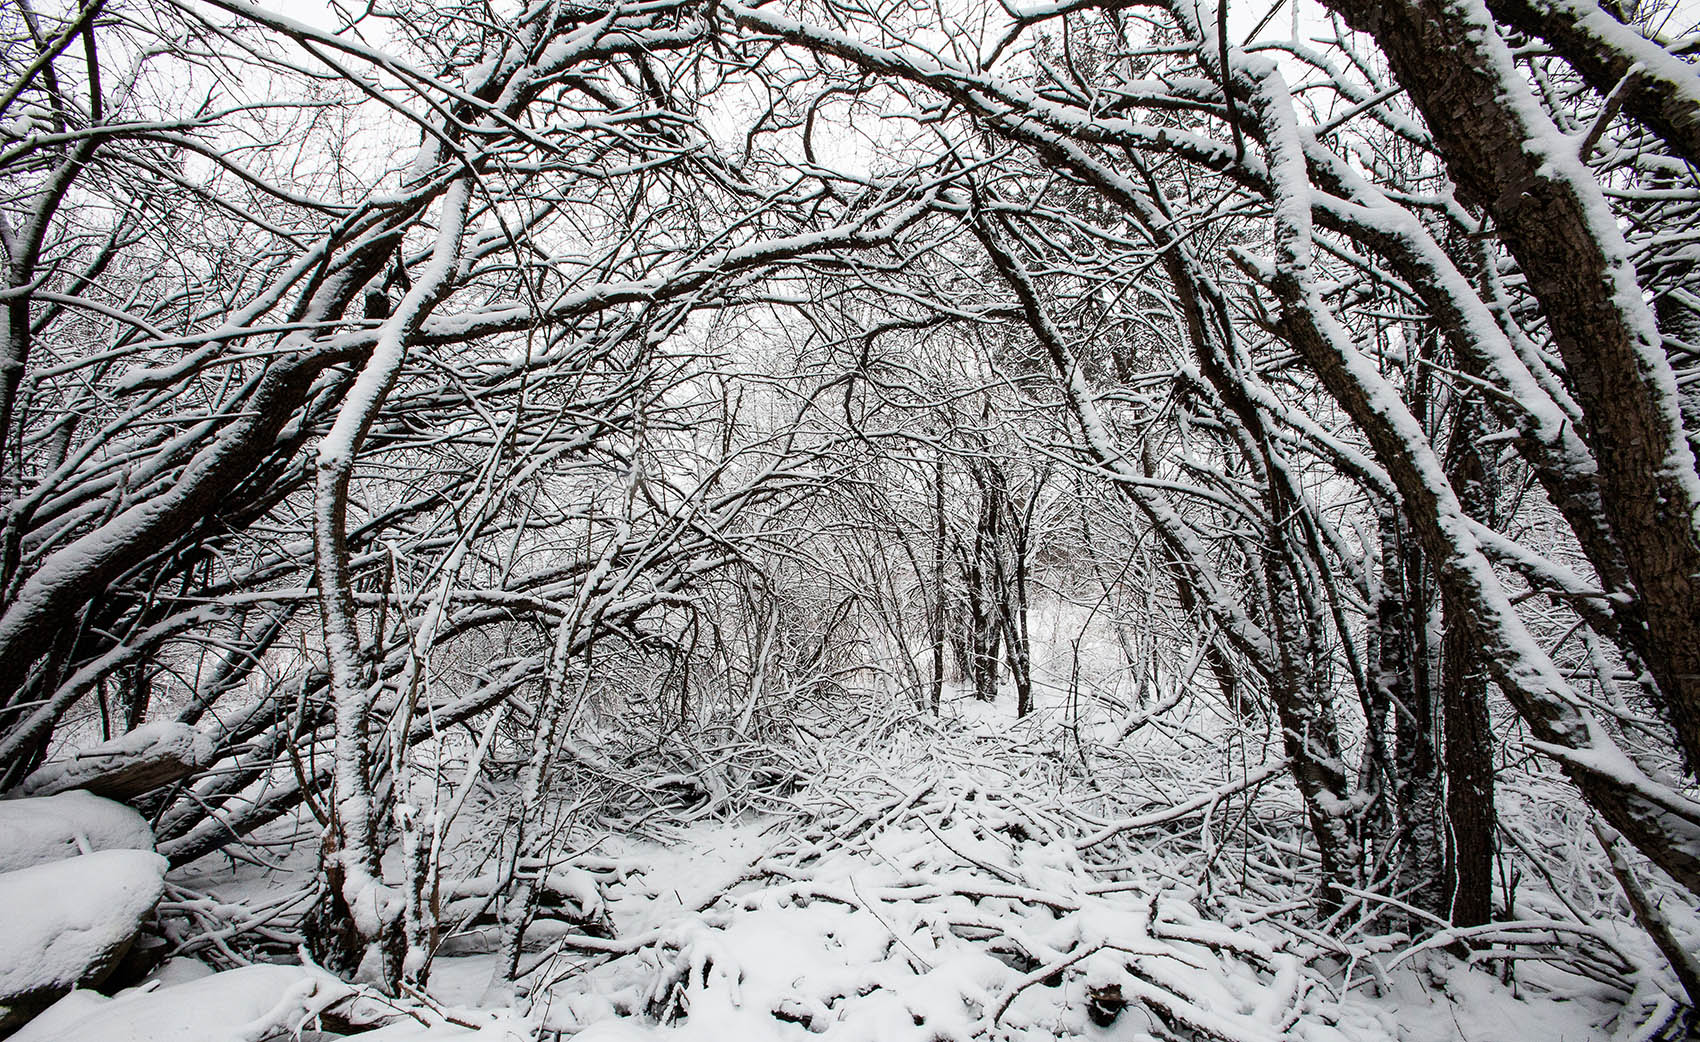 Winter snow in a thicket at Mary Cummings Park